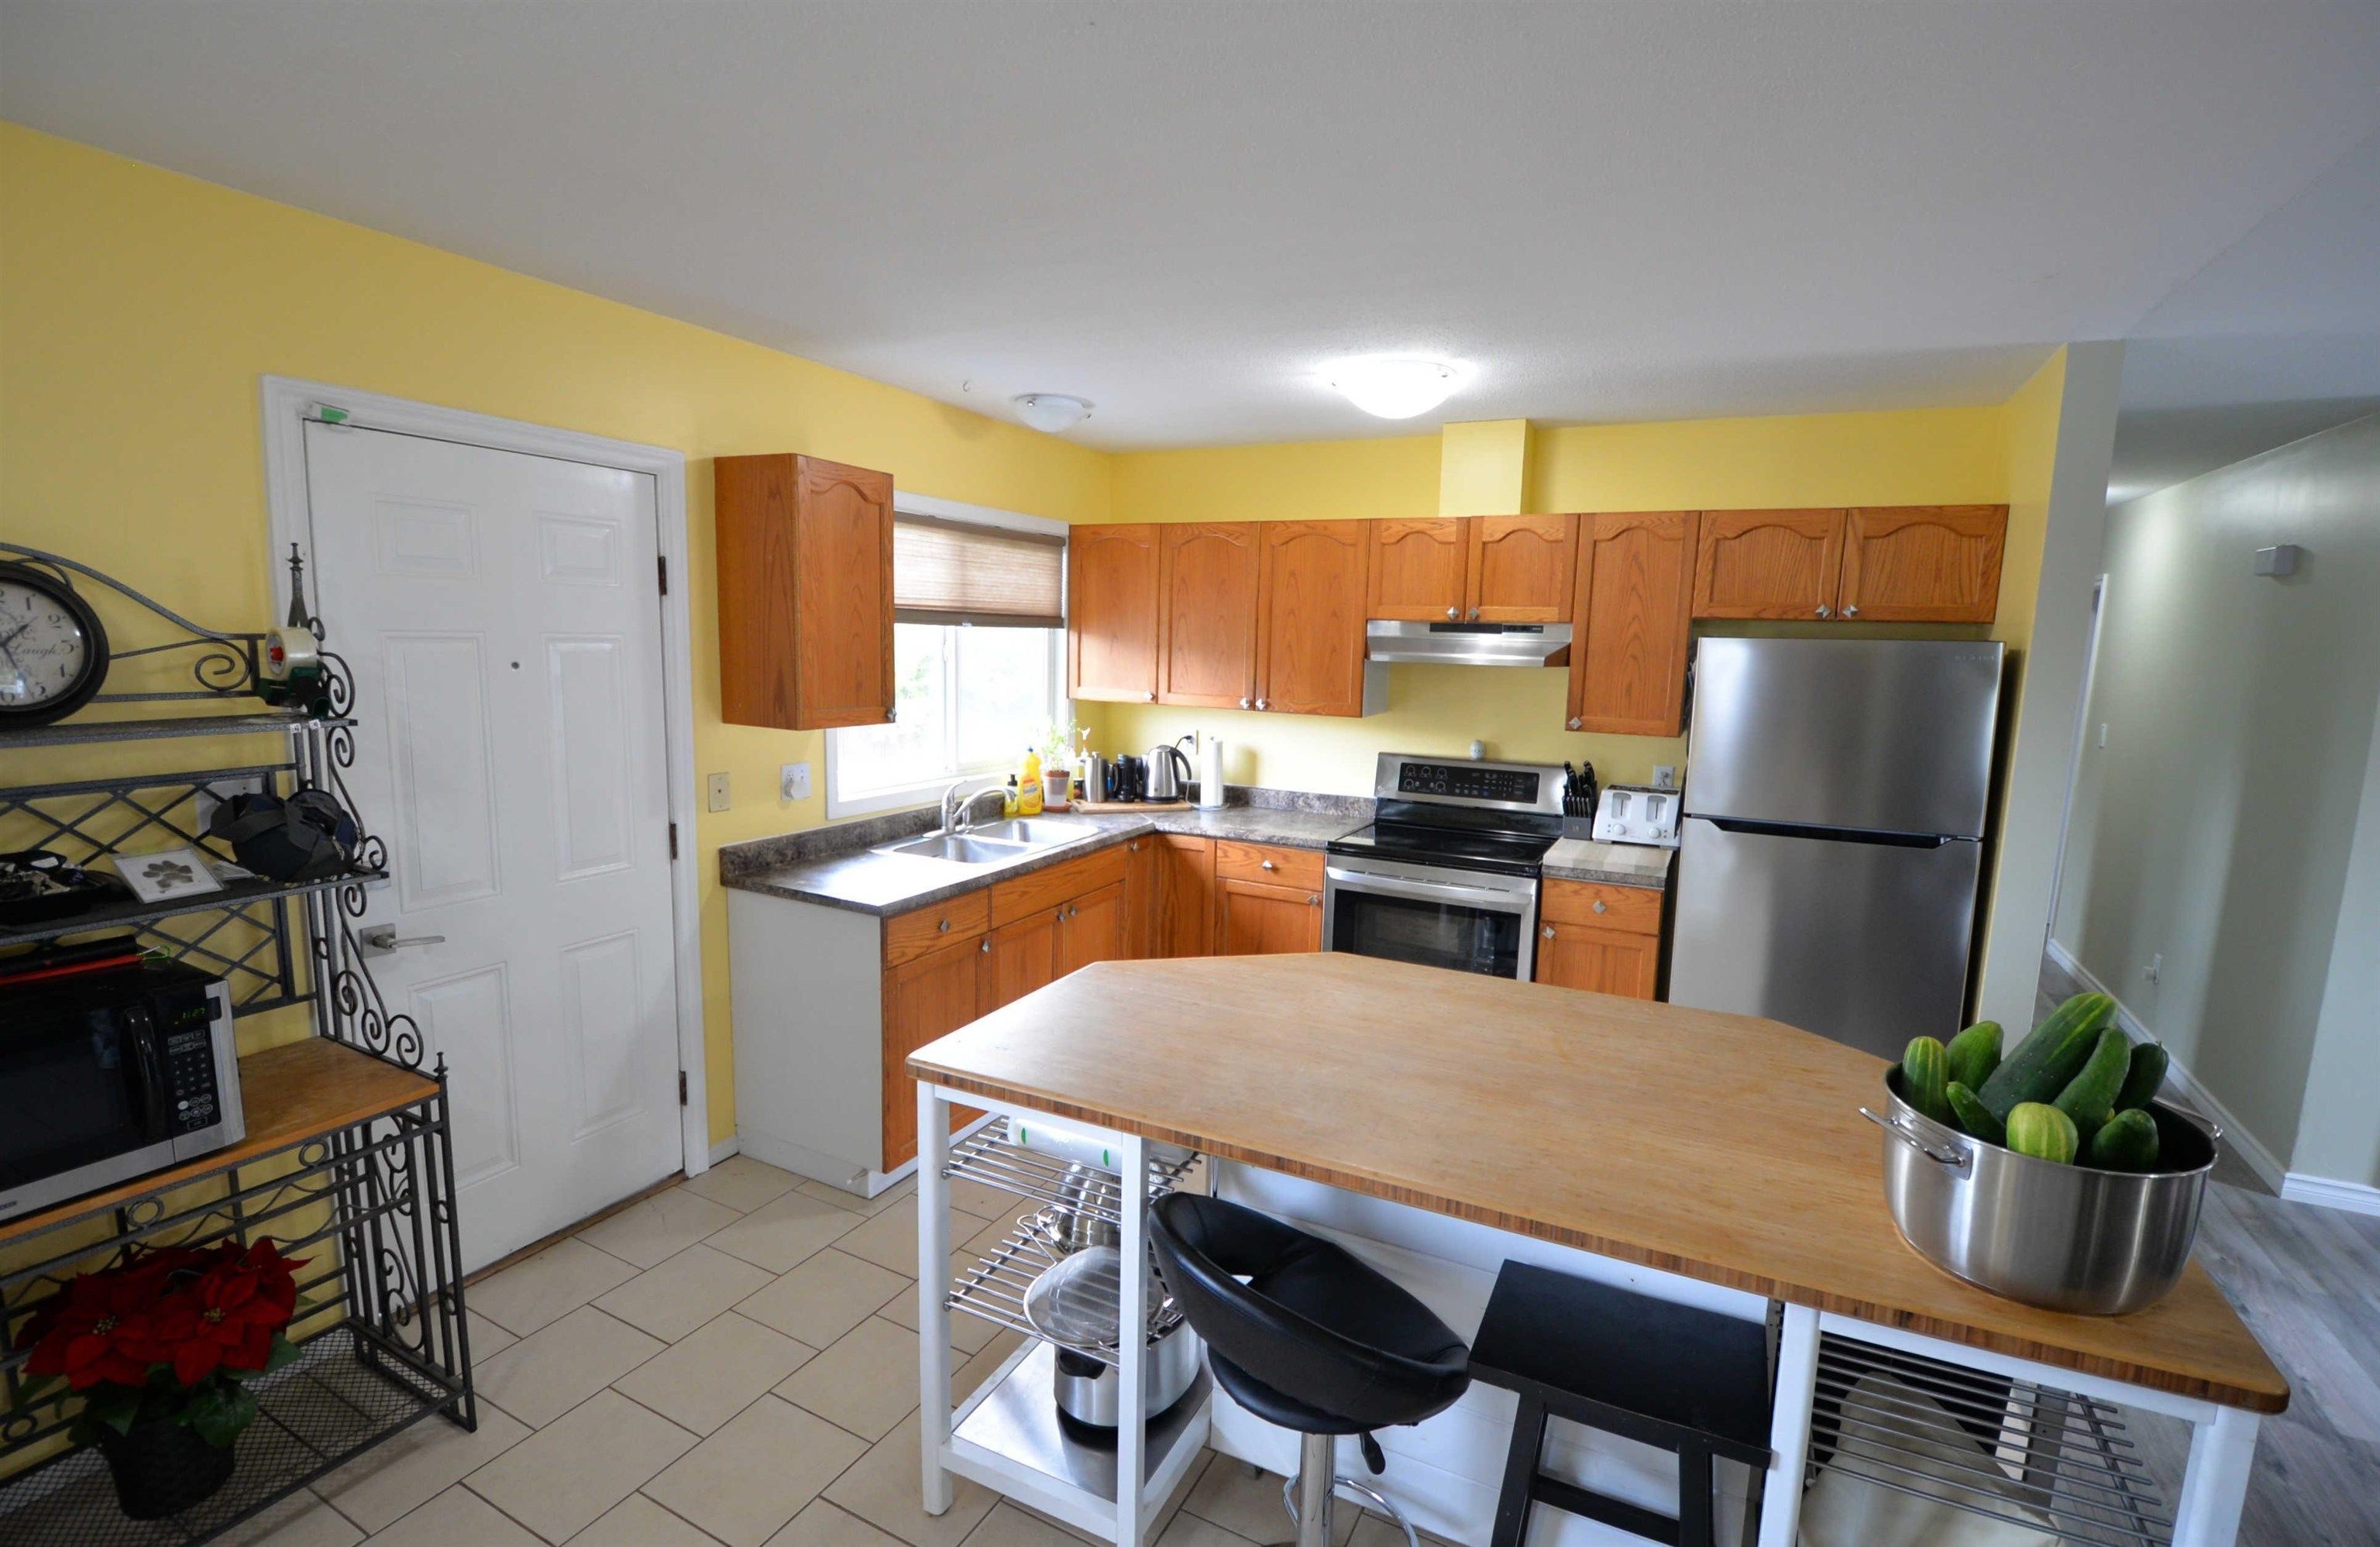 """Photo 3: Photos: 2306 OAK Street in Prince George: VLA House for sale in """"VLA"""" (PG City Central (Zone 72))  : MLS®# R2615261"""